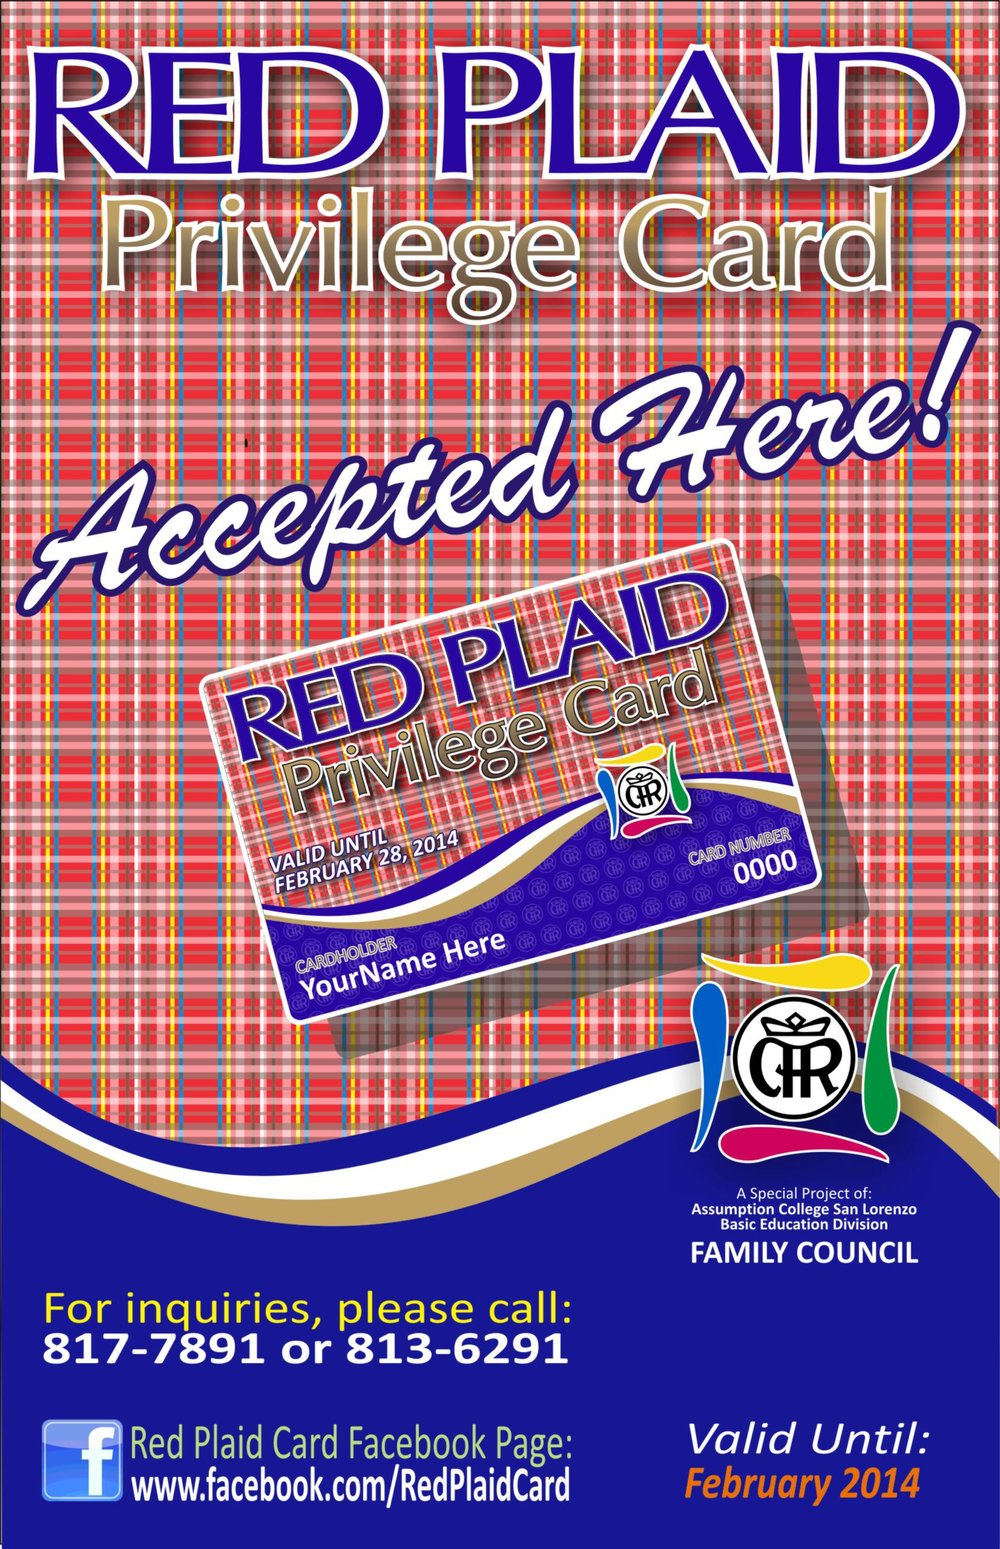 Store-signage-red-plaid-card-accepted-here-version-1.jpg